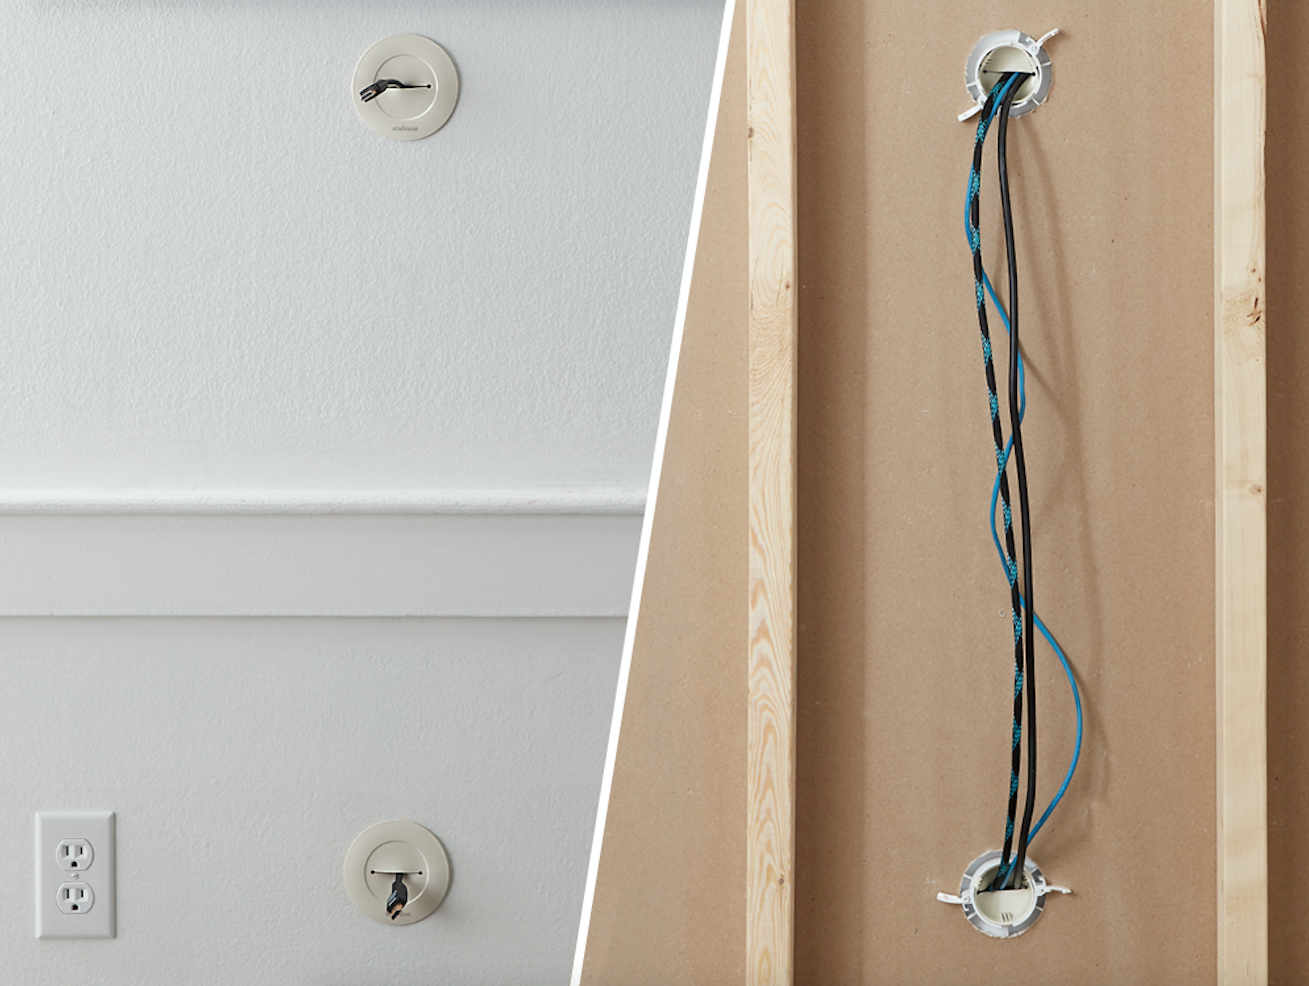 How To Hide TV Wires In Or On The Wall - ECHOGEAR Hide Wiring on